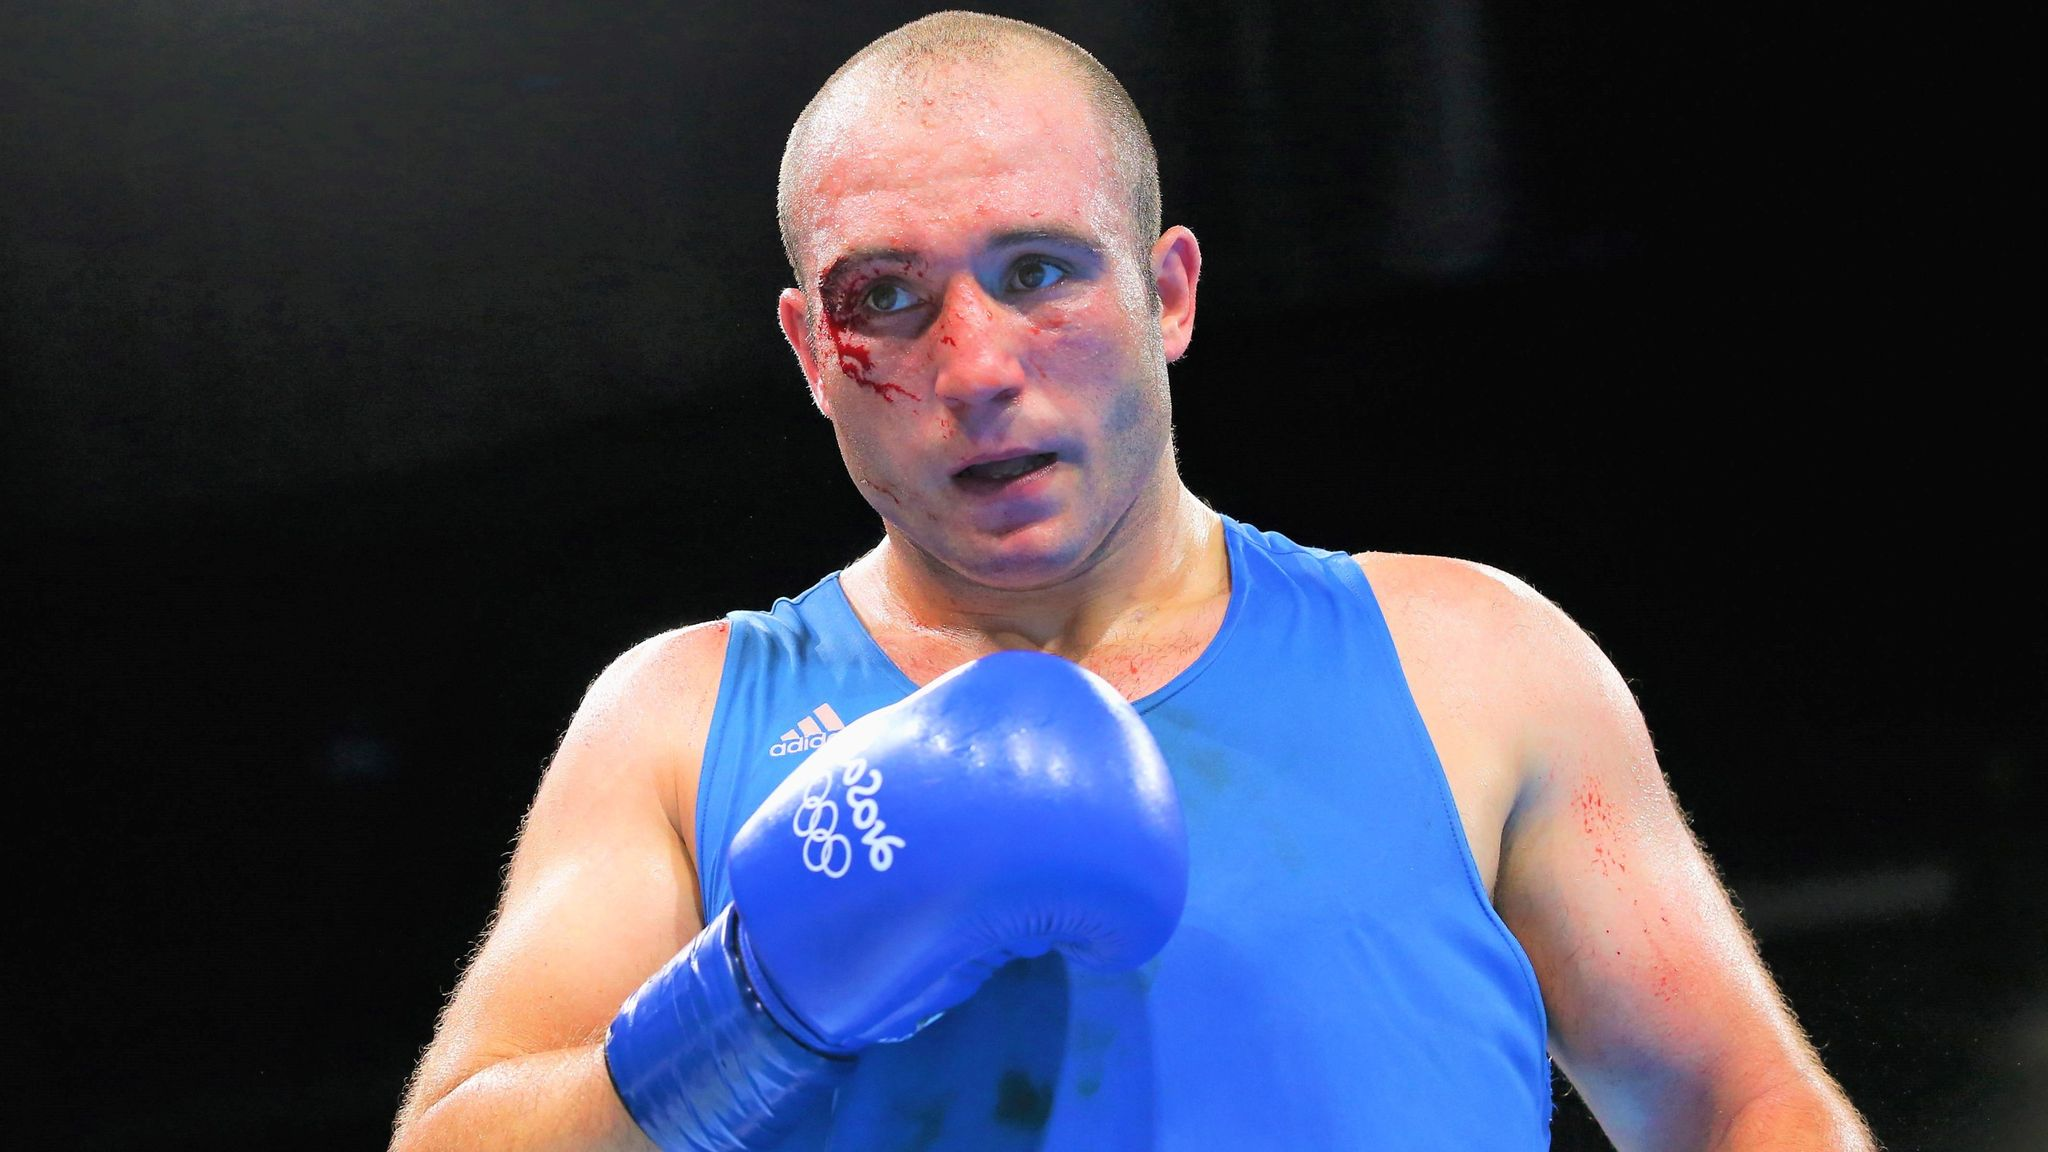 Arslanbek Makhmudov could be on collision course with Anthony Joshua